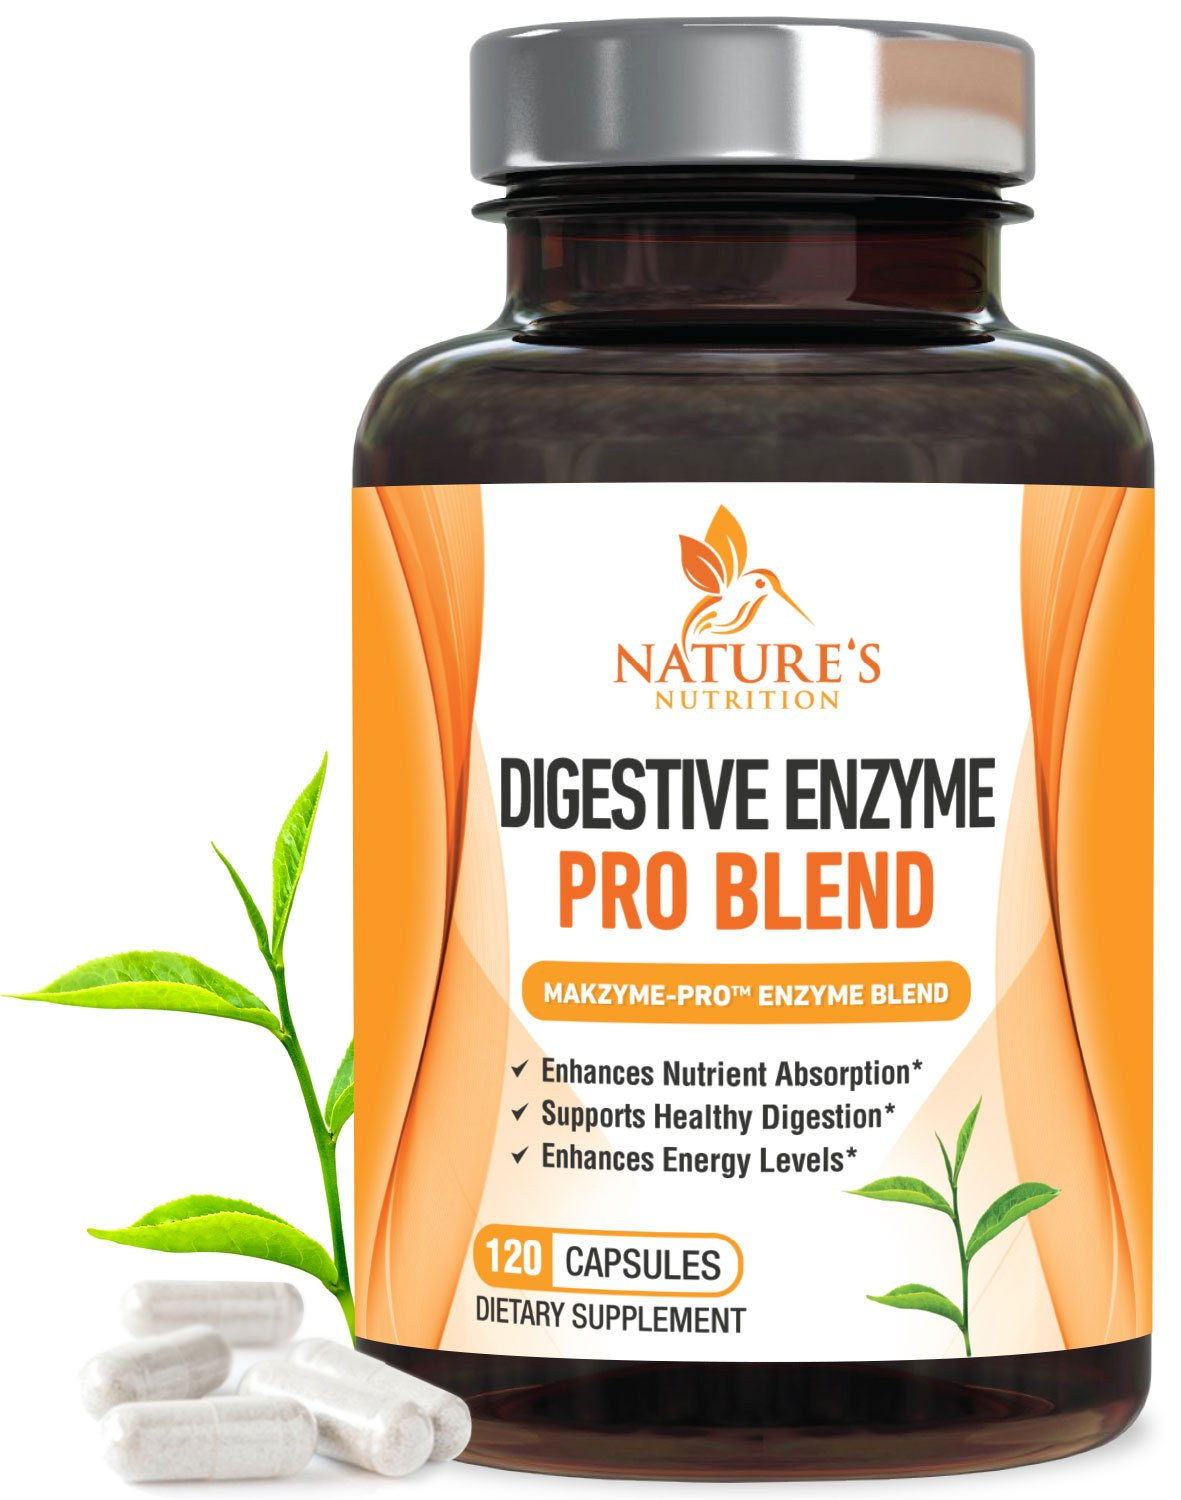 Digestive Enzymes Plus Prebiotics & Probiotics 1000mg - Natural Pancreatic Support Supplement for Better Digestion - Gas, Constipation & Bloating Relief by Nature's Nutrition - 120 Vegan Capsules